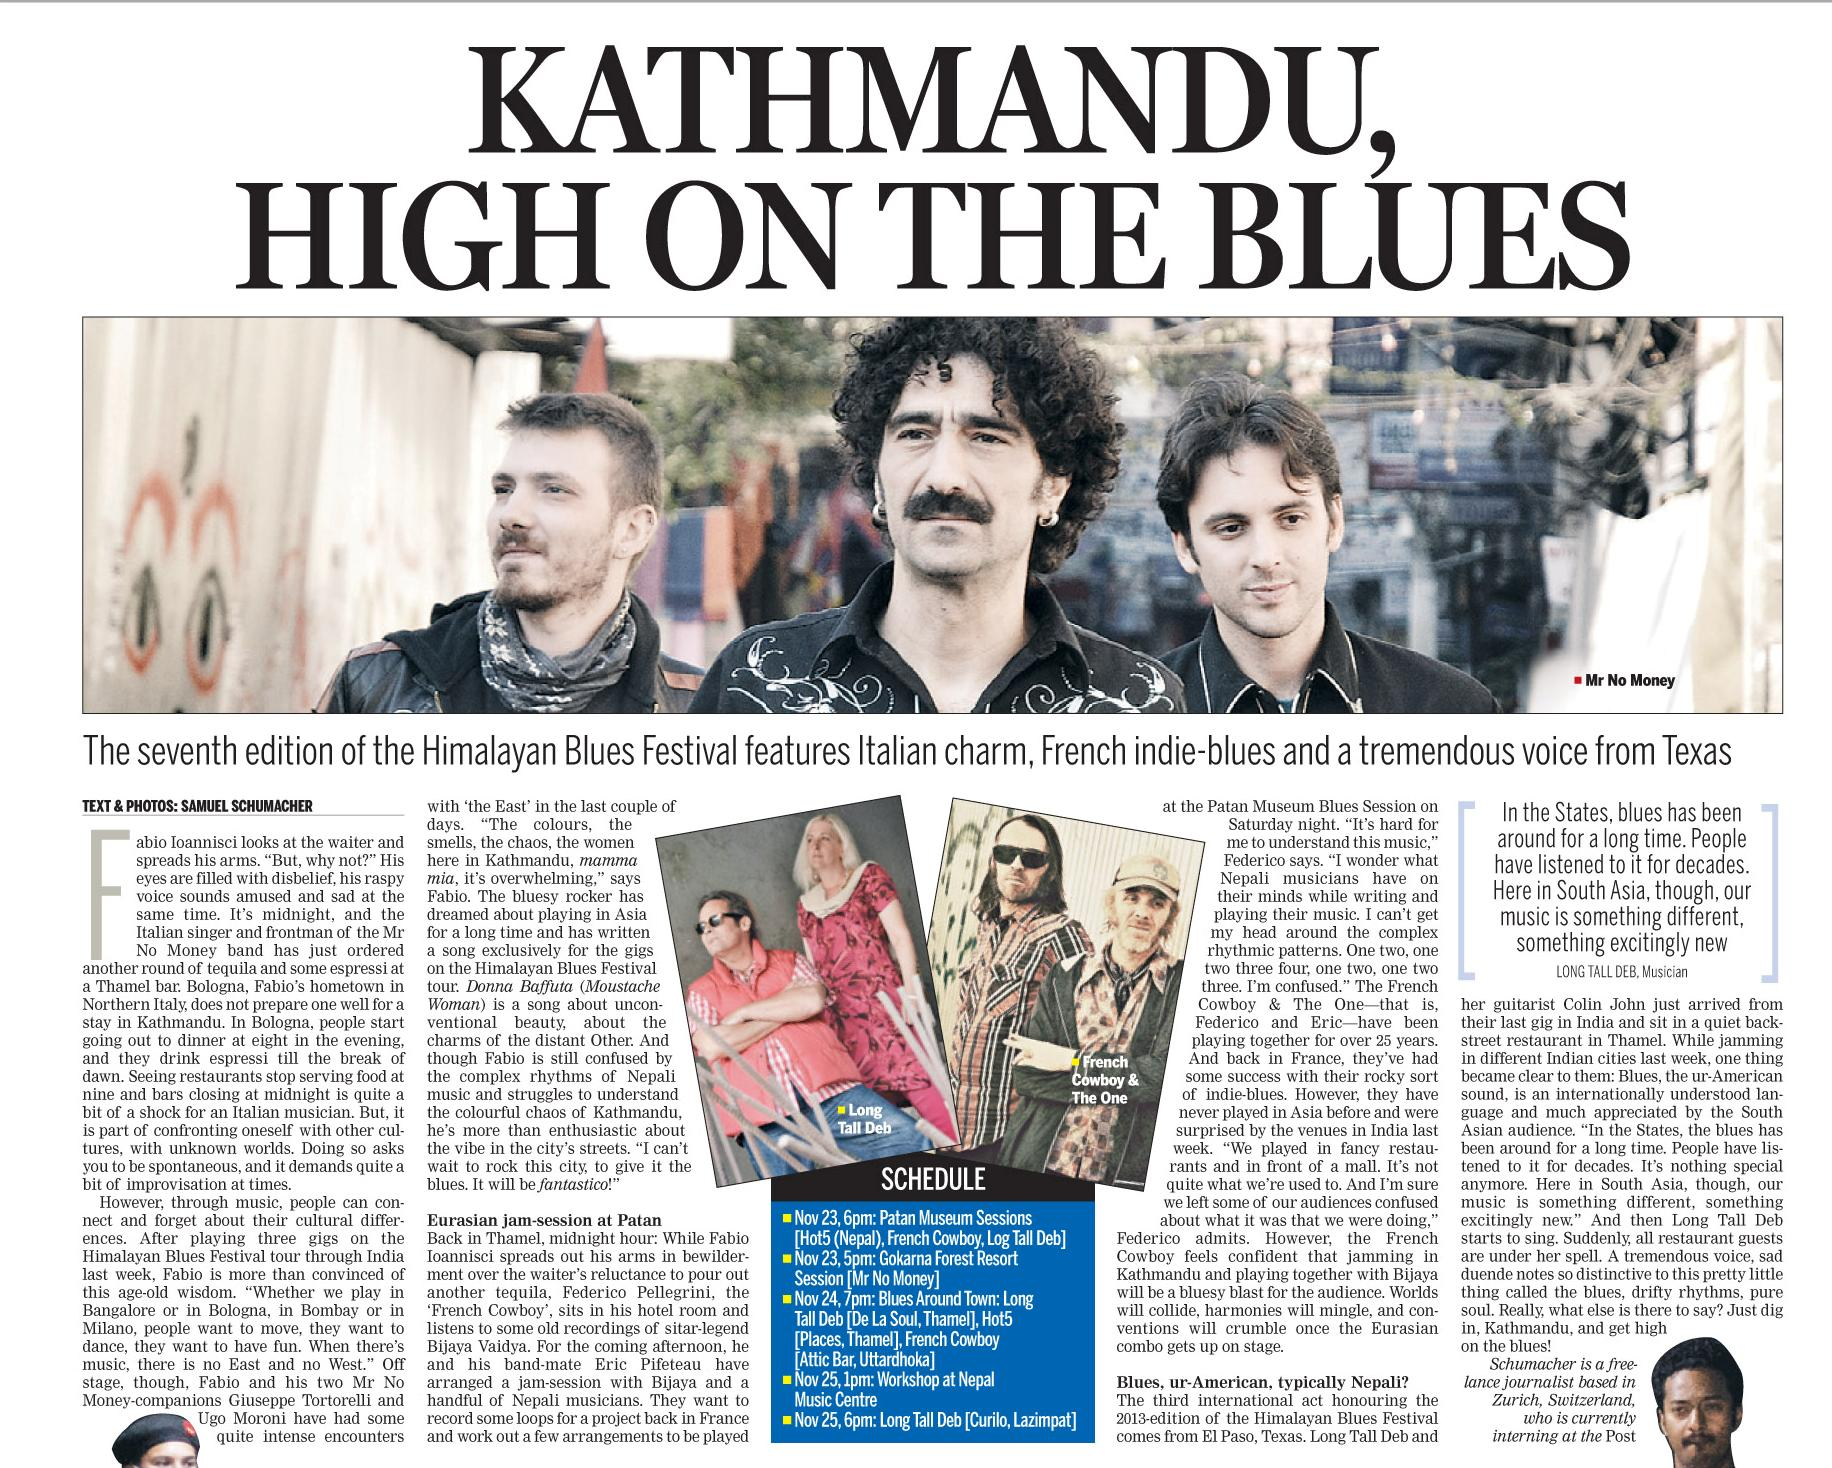 Himalayan Blues Festival Vorschau Artikel in der Kathmandu Post vom 23. November 2013